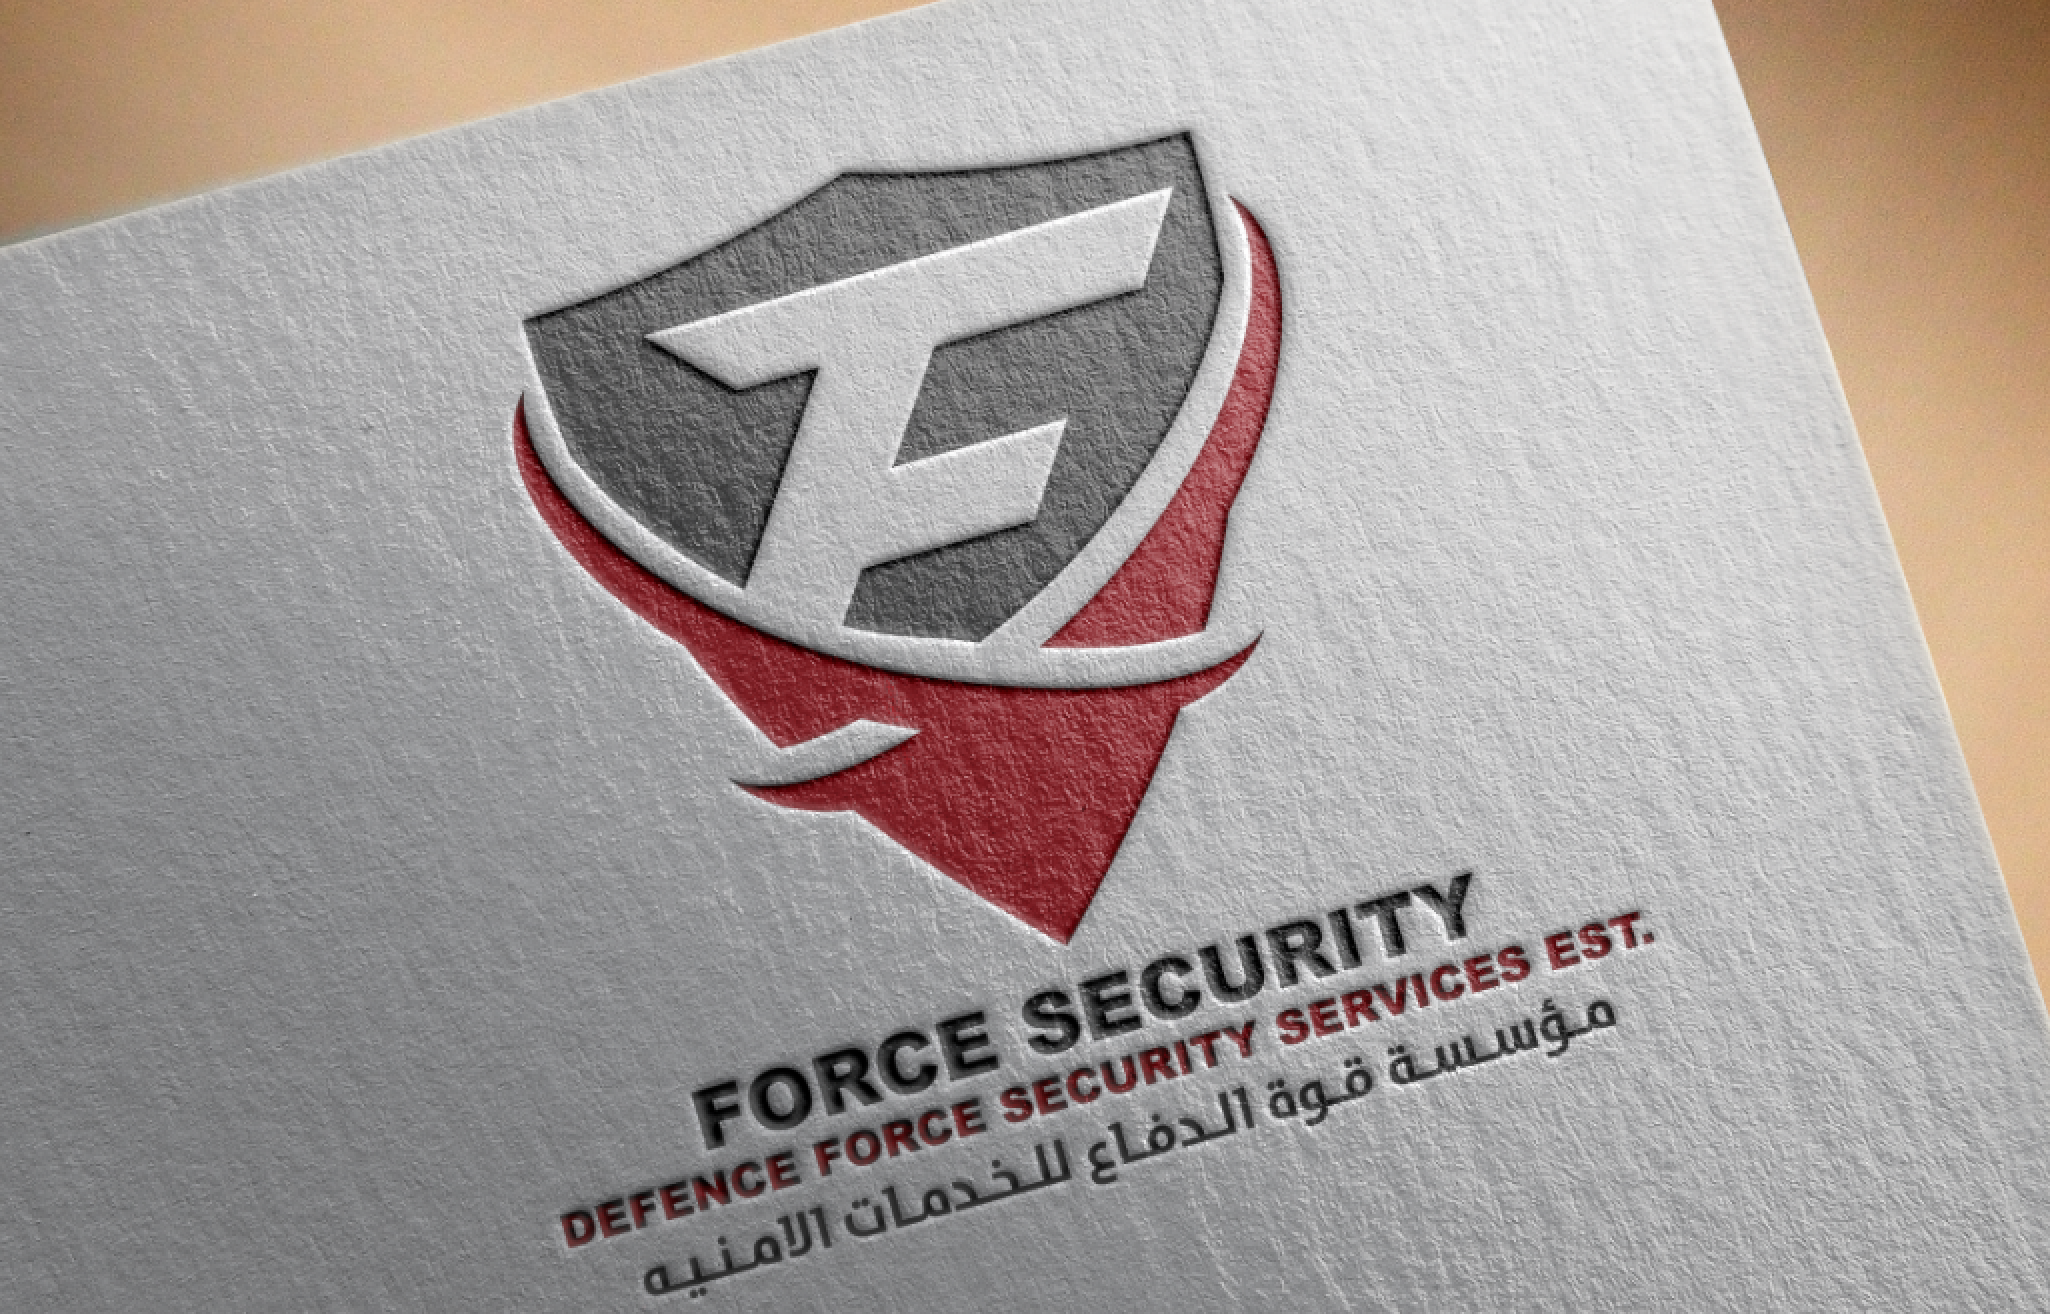 FORCE SECURITY IDENTITY